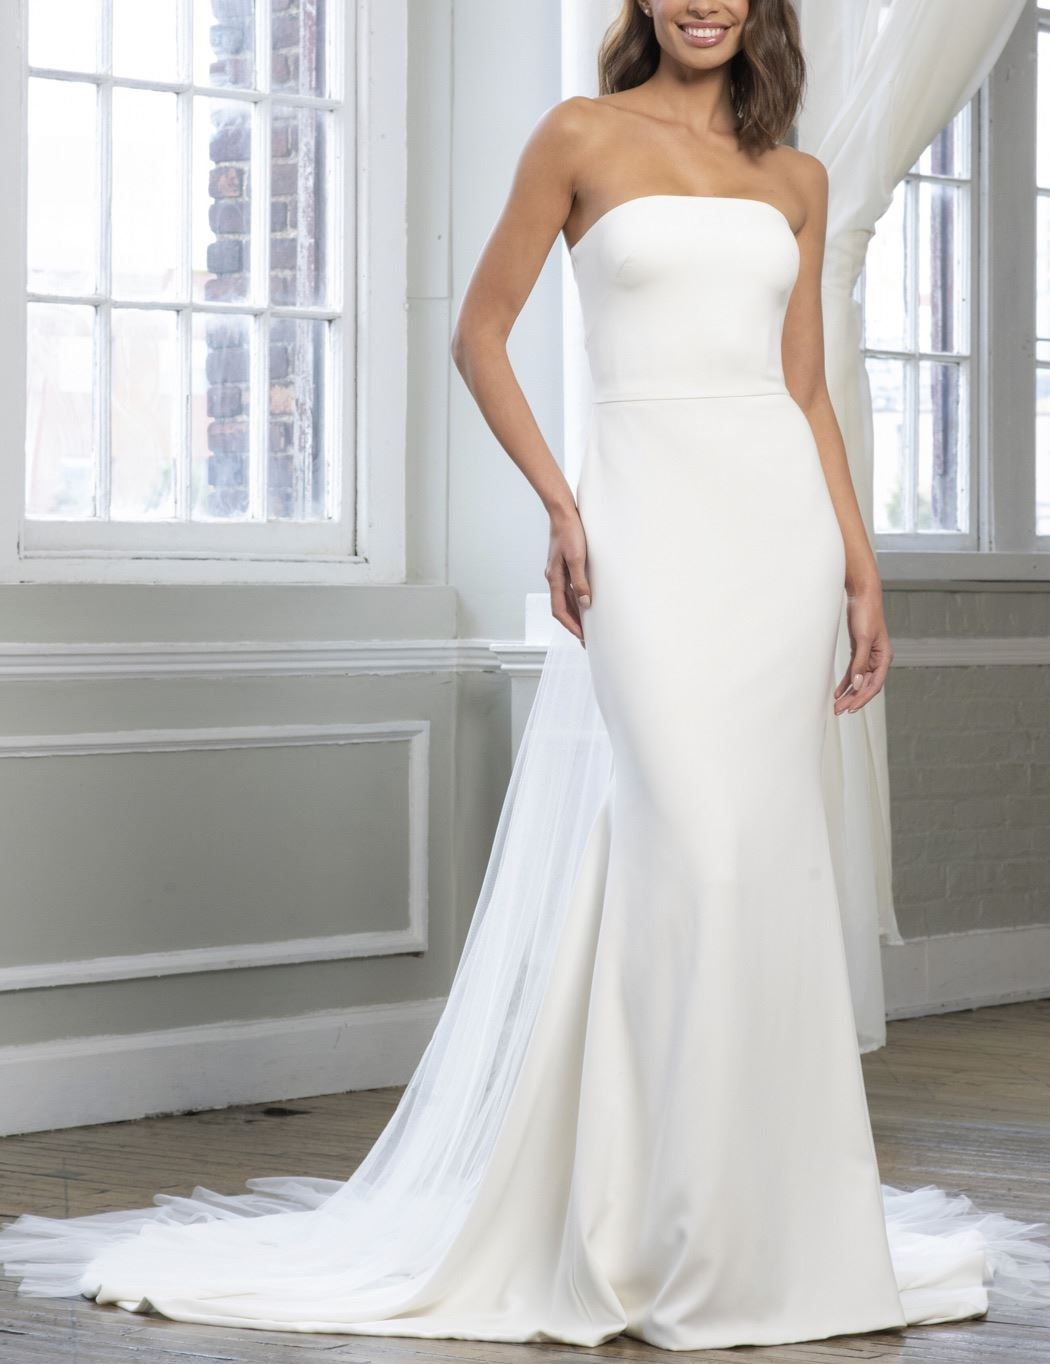 Theia's 'Lindsay' wedding dress is a strapless crepe gown